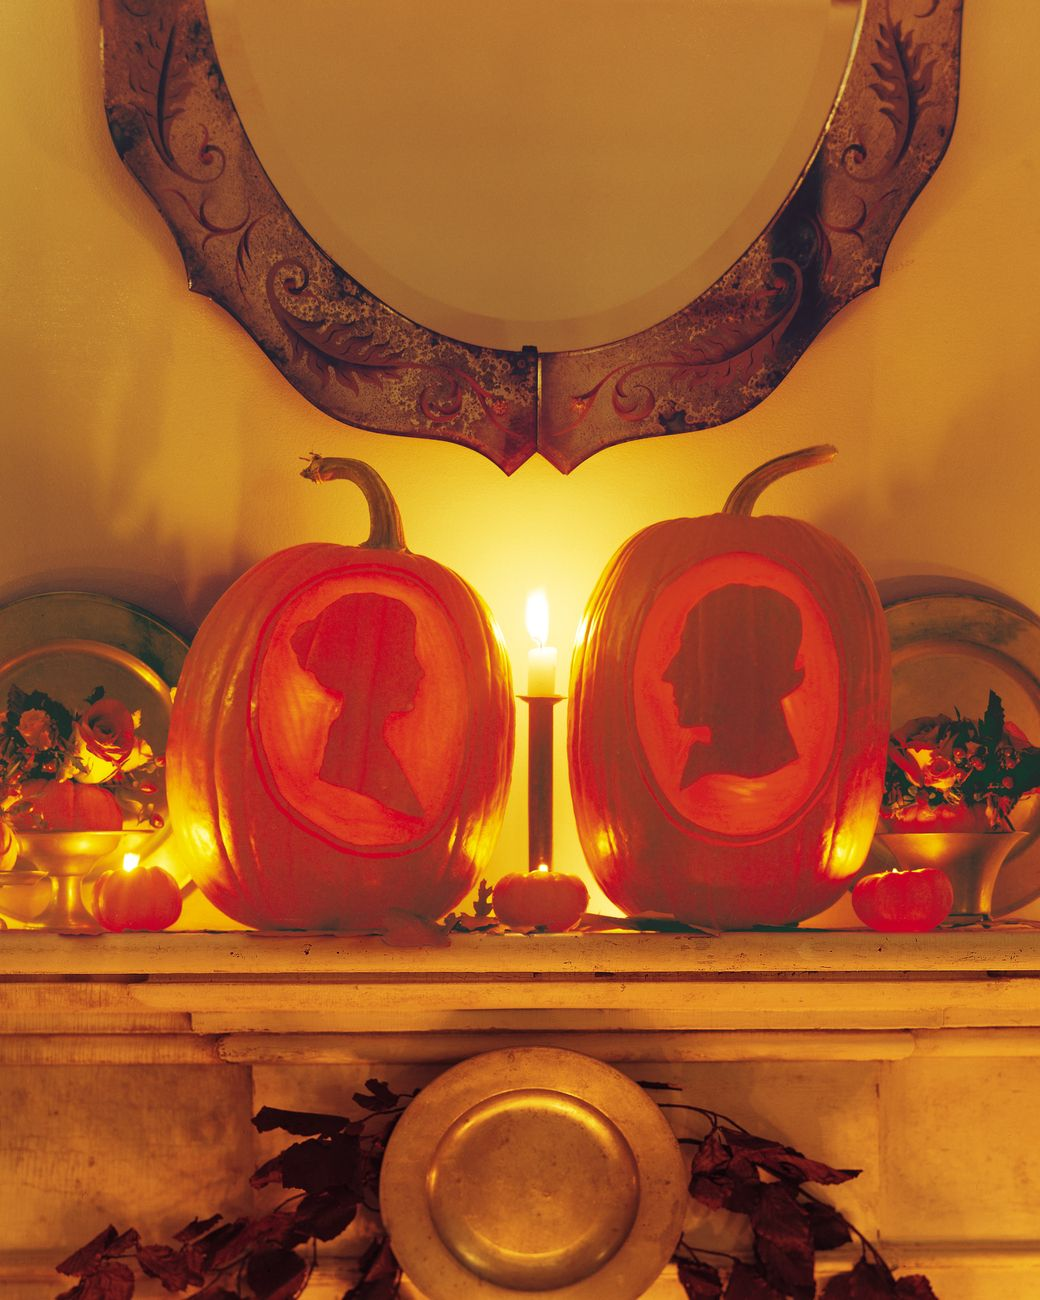 Cool Pumpkin Carving Ideas That Double as Decor Pumpkin carvings